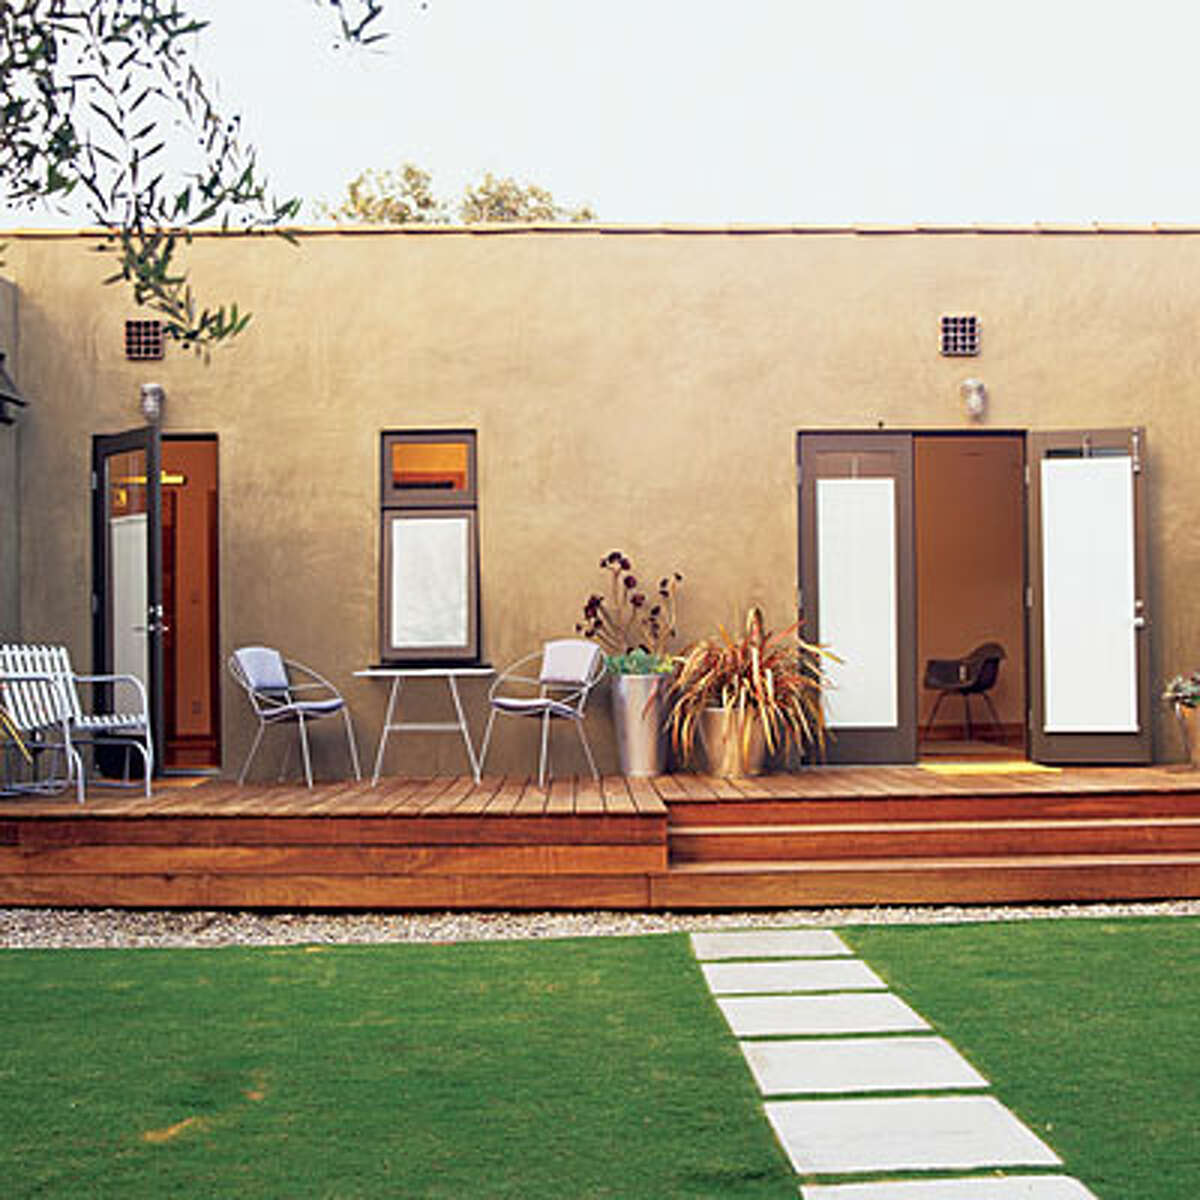 Small-home solution A new deck off the back bedrooms helped design team John Jennings and Sasha Tarnopolsky make the most of their 1,100-square-foot home. The deck, made from Ipe wood, acts as extensions of the living areas, a private outdoor retreat, and a graceful, 3-step transition to the garden. See the backyard before